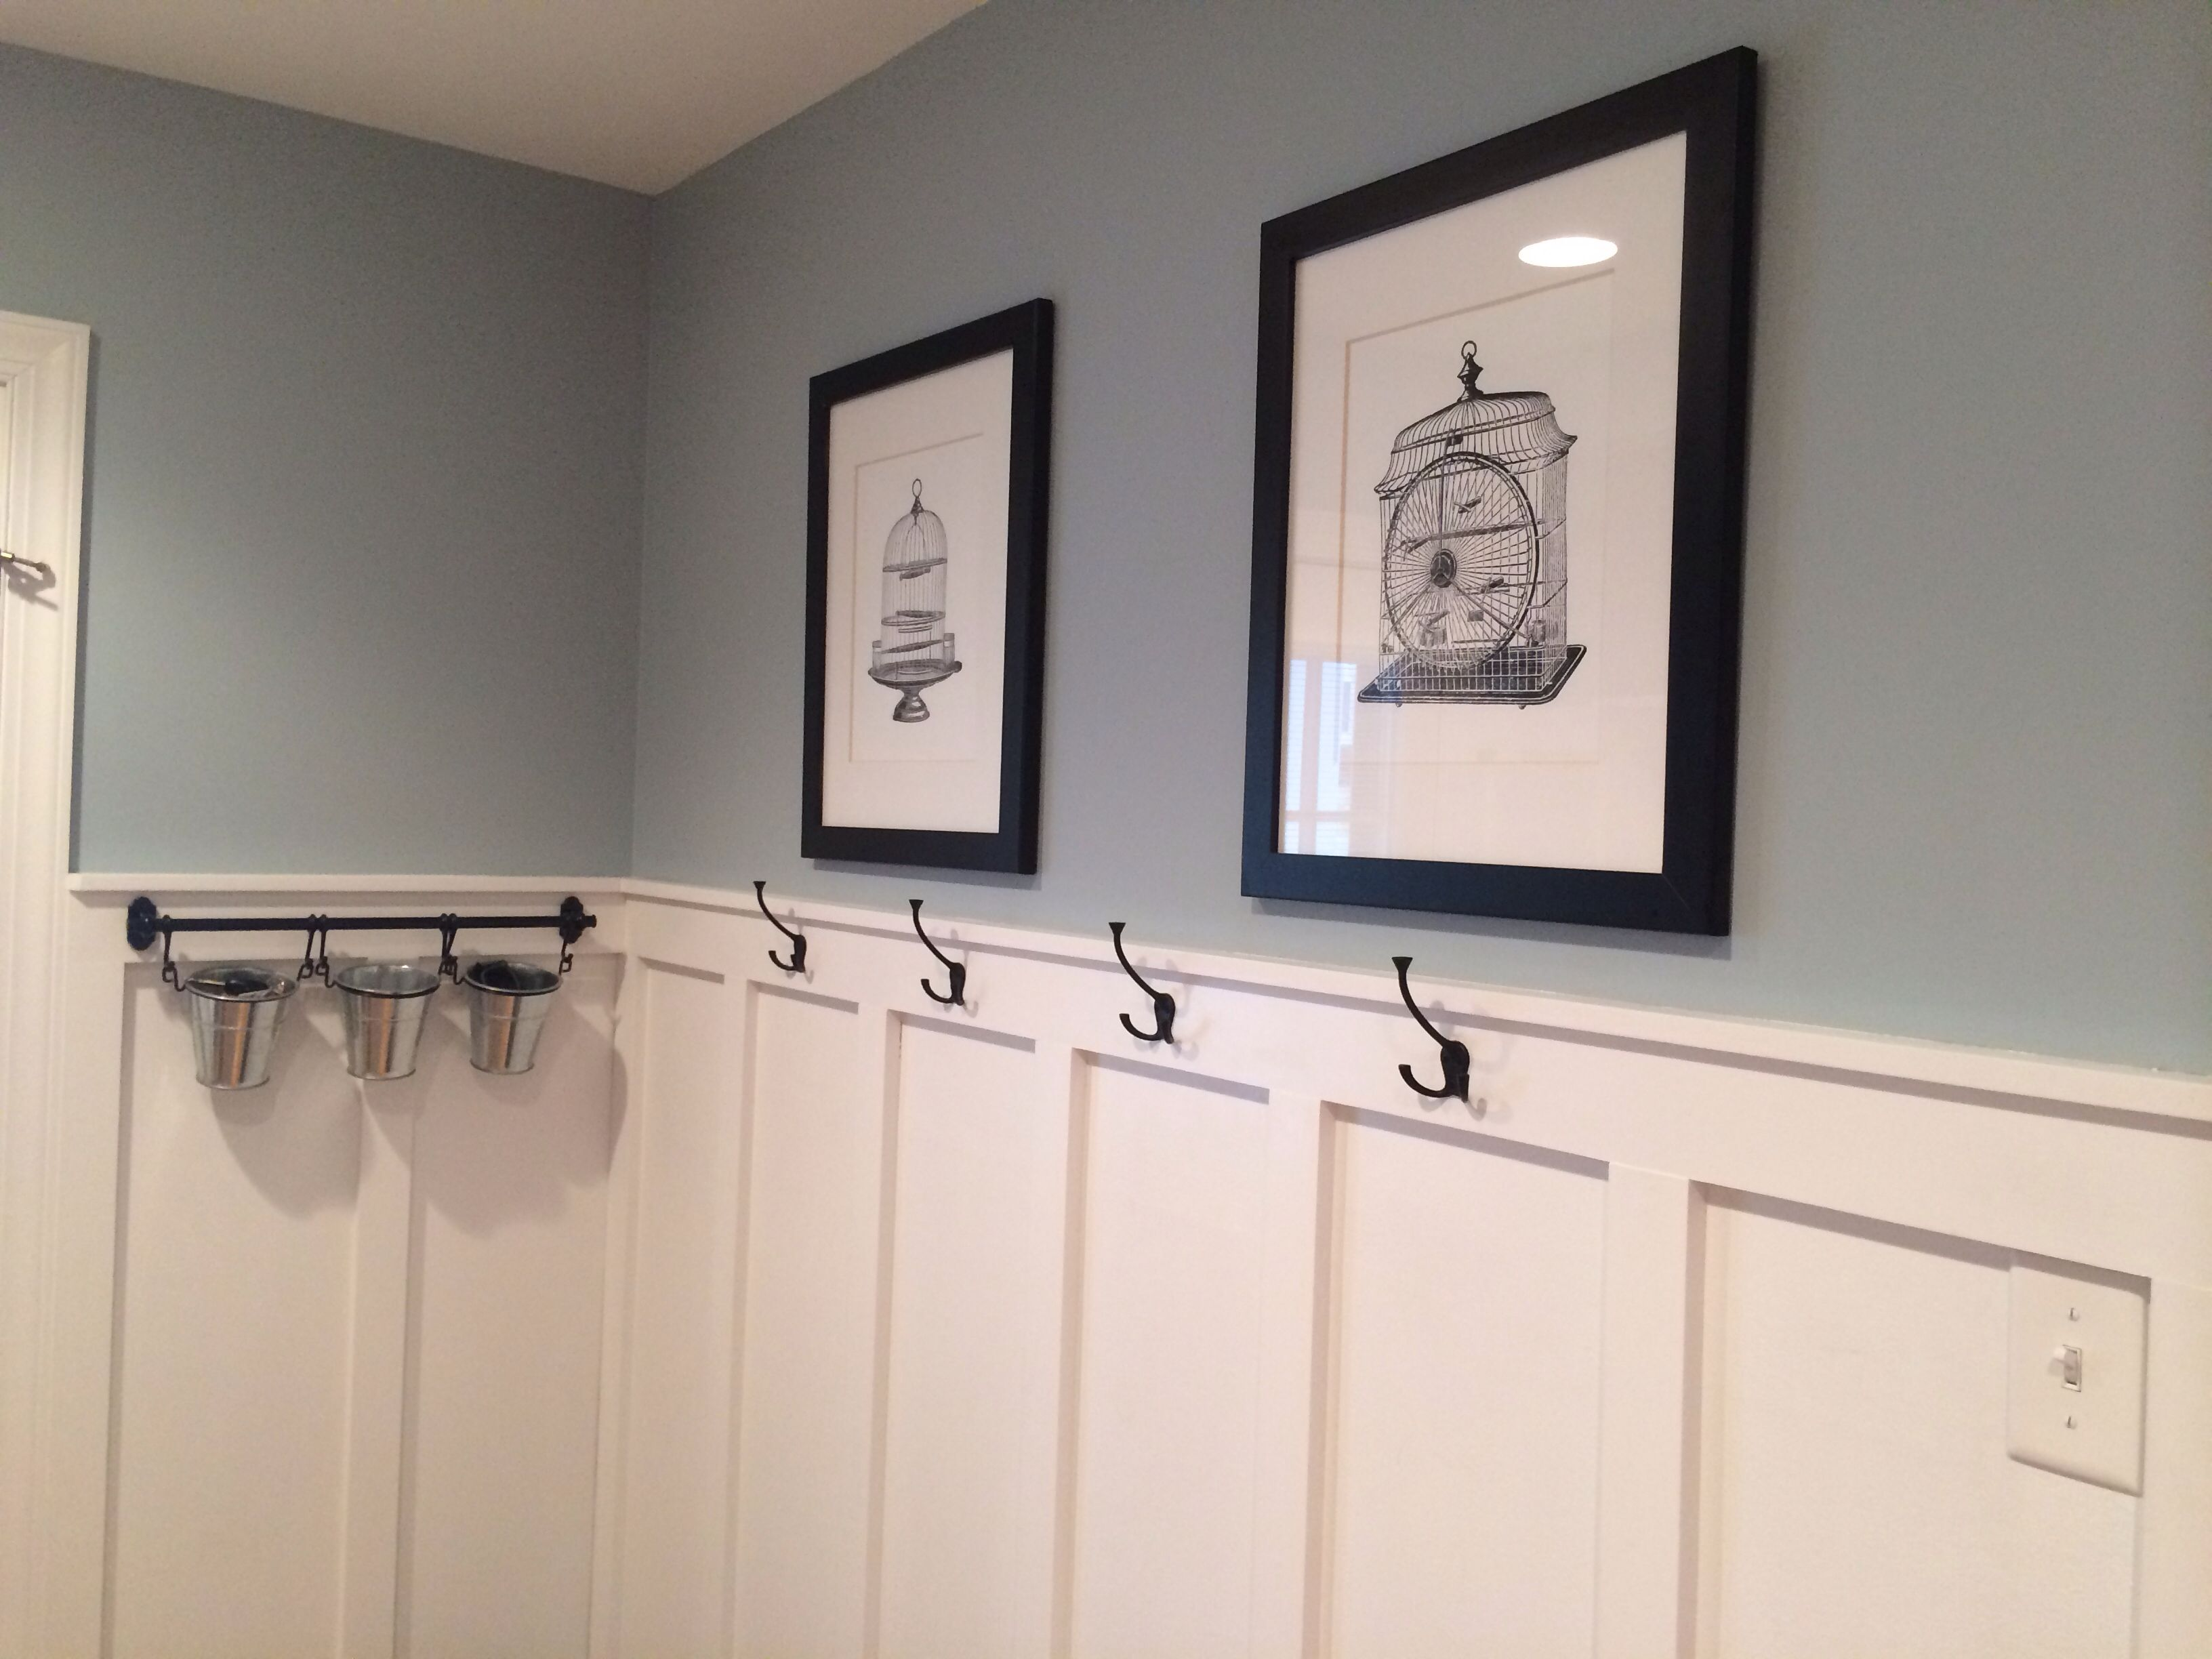 Mudroom Updated With Board And Batten Wall Color Valspar Woodlawn Silver Brook Dining Room Paint